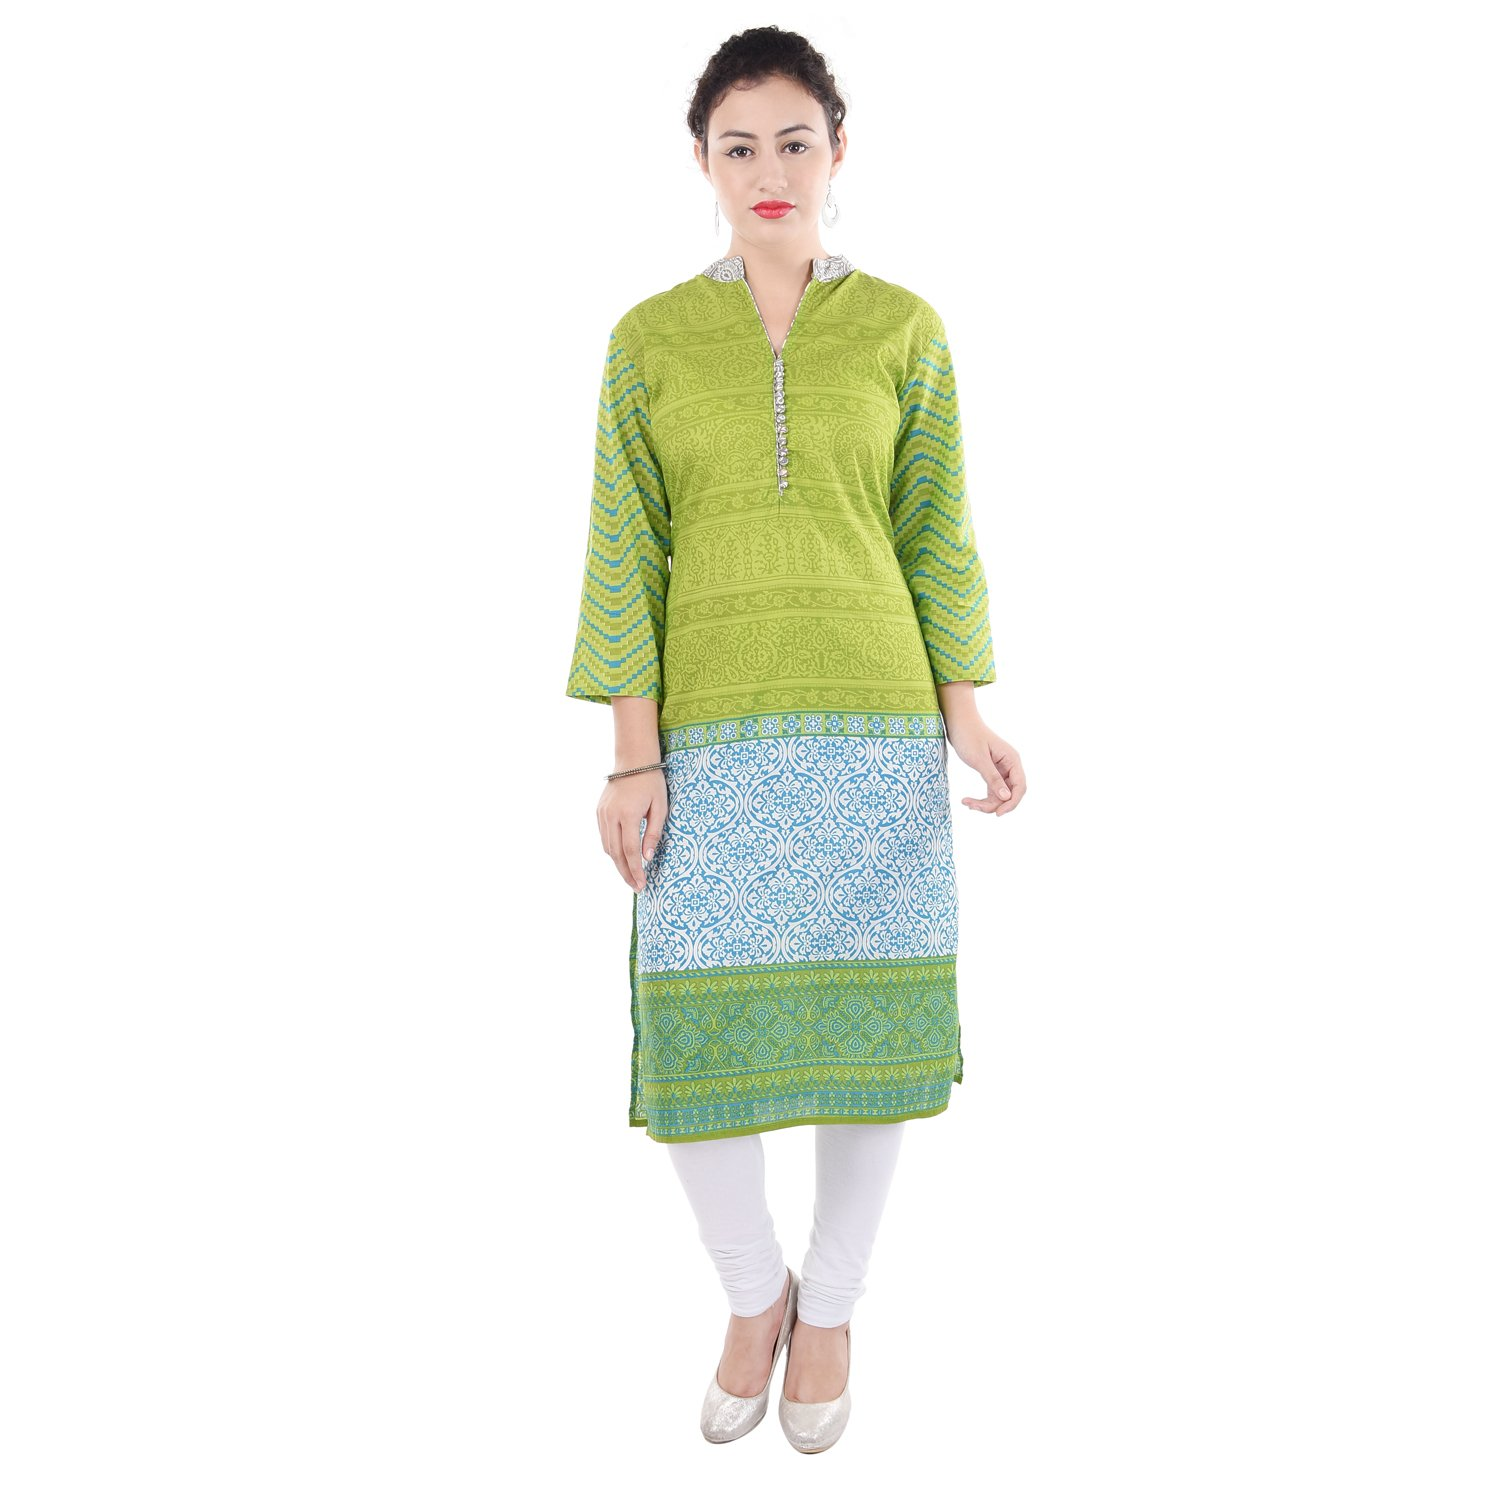 Chichi Women 3/4 Sleeve Tunic Embroidery Top Kurti Blouse (Yellow)(Women's Day Special),Medium,Fire-yellow by CHI (Image #5)